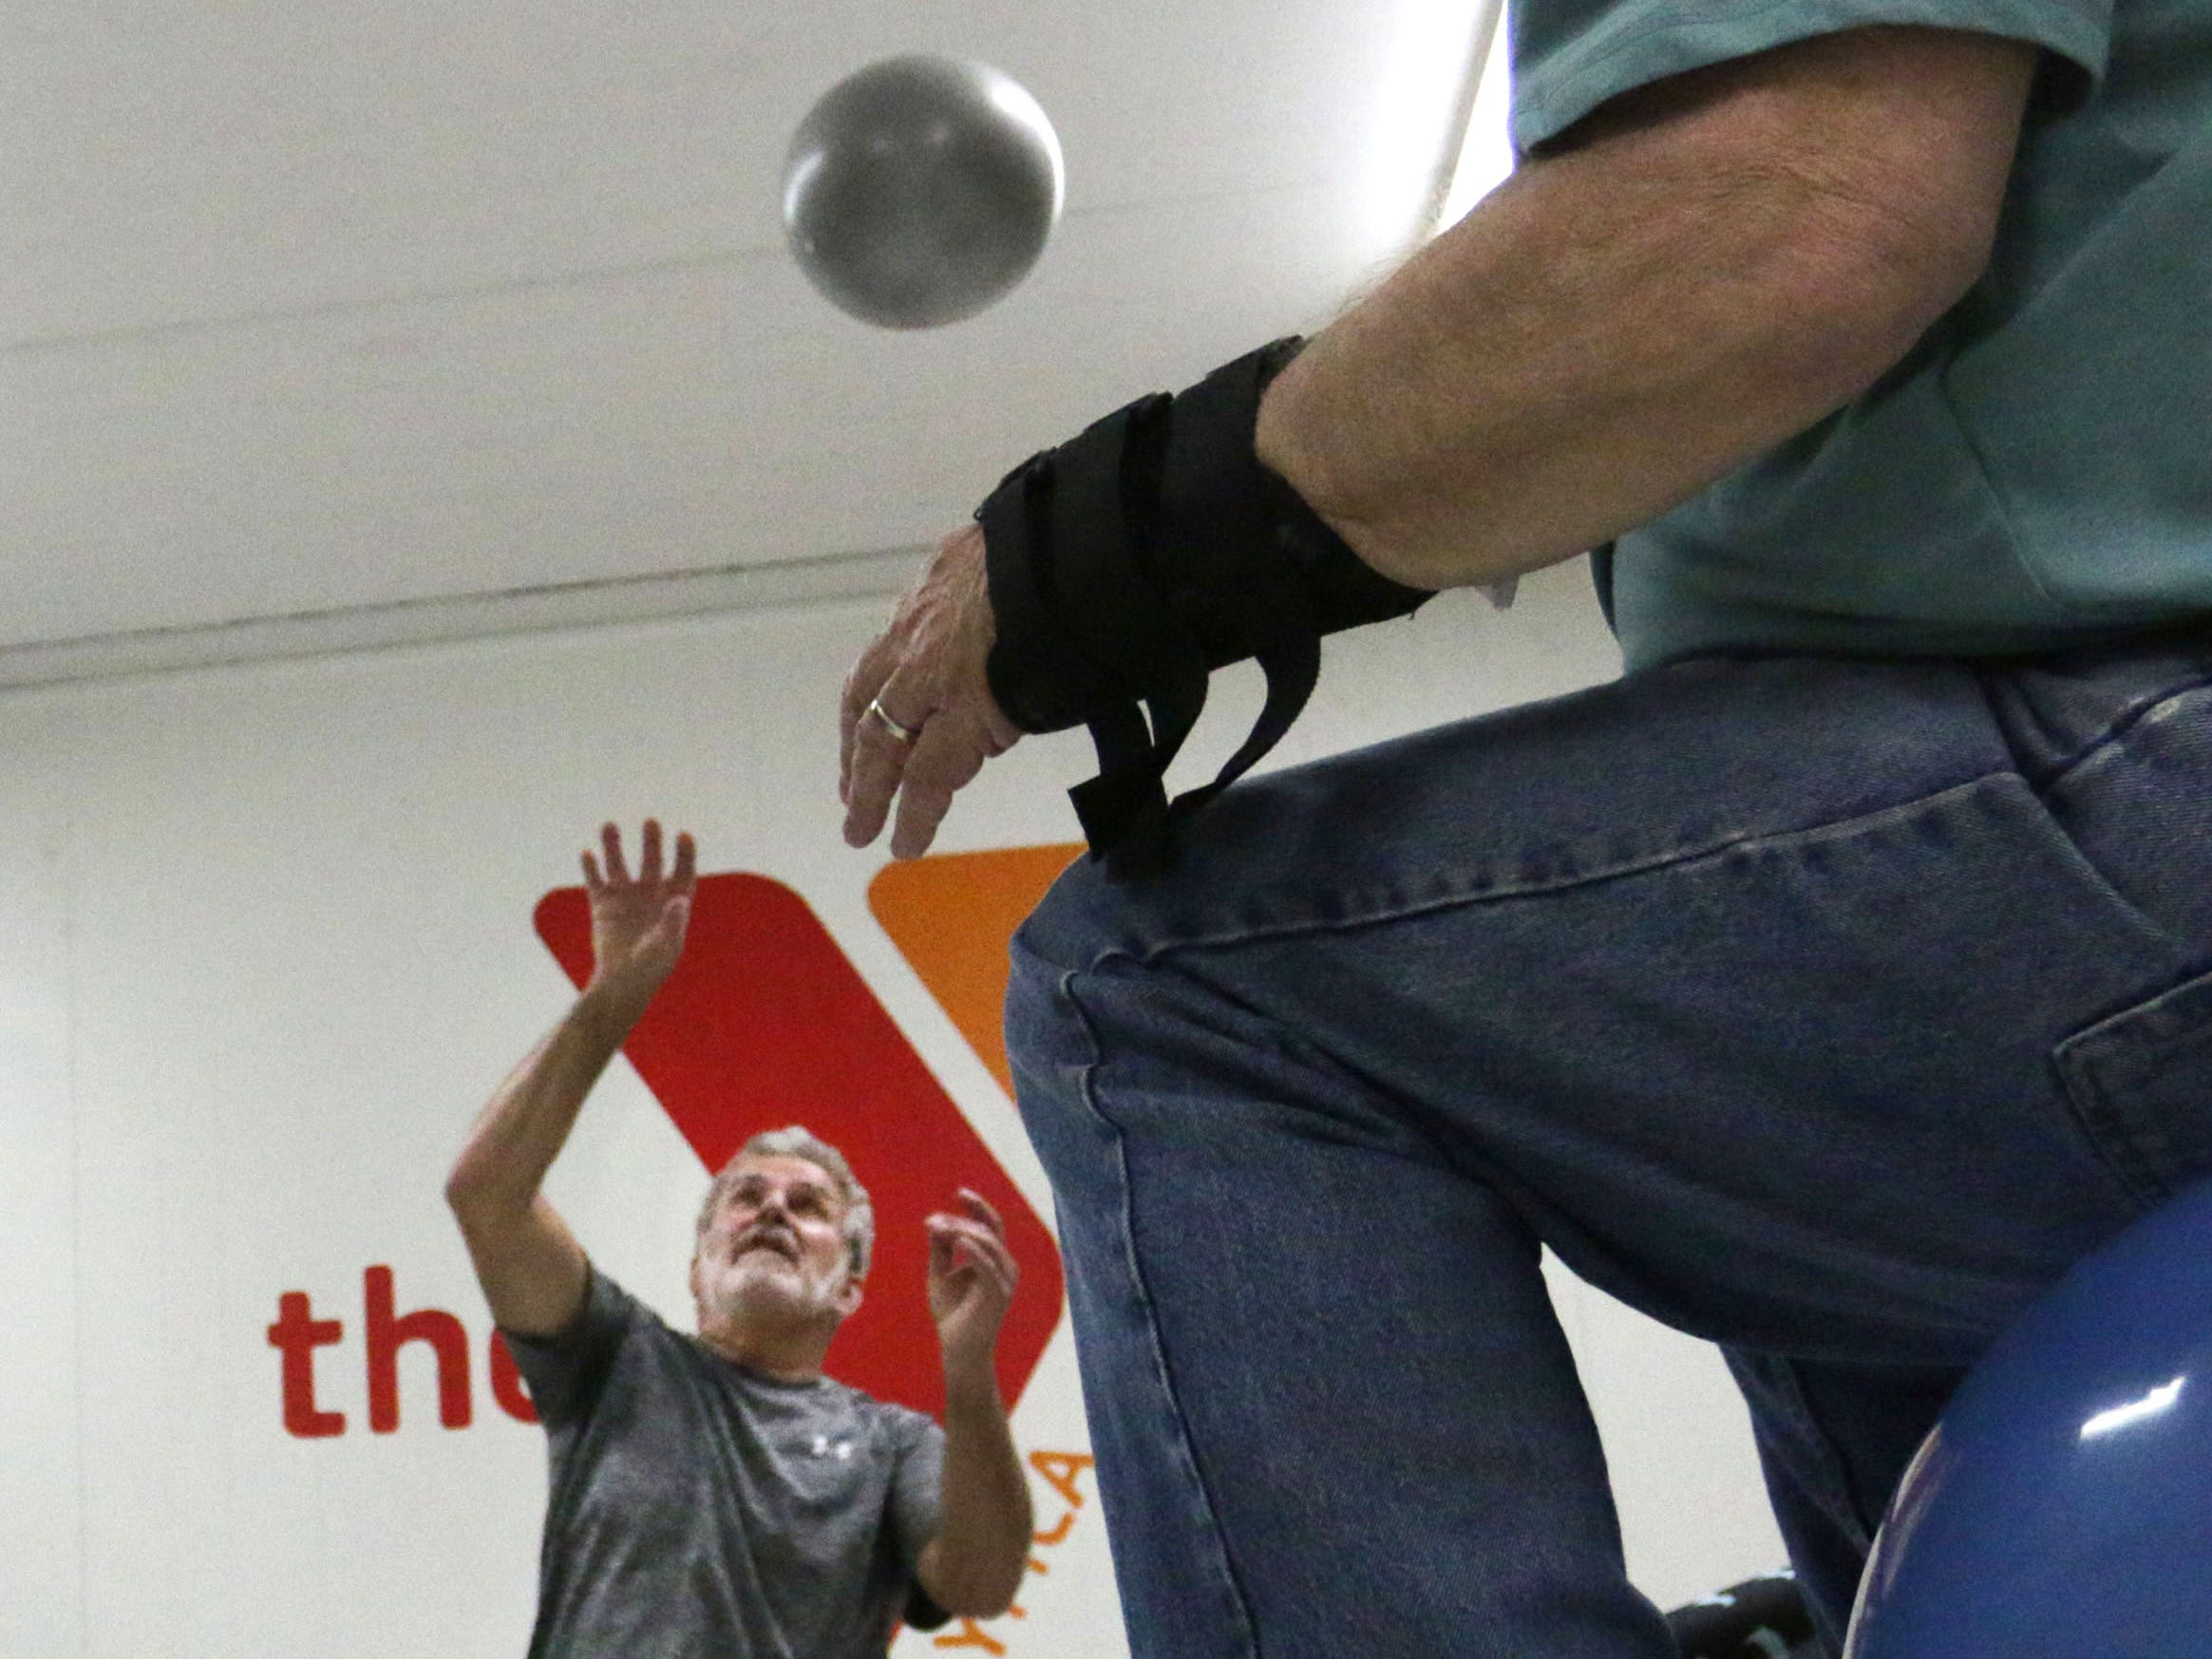 Larry Boll of Sheboygan, hits a balloon skyward during a motor control class during the YMCA Fighting Parkinson's, Thursday, March 21, 2019, in Sheboygan, Wis.